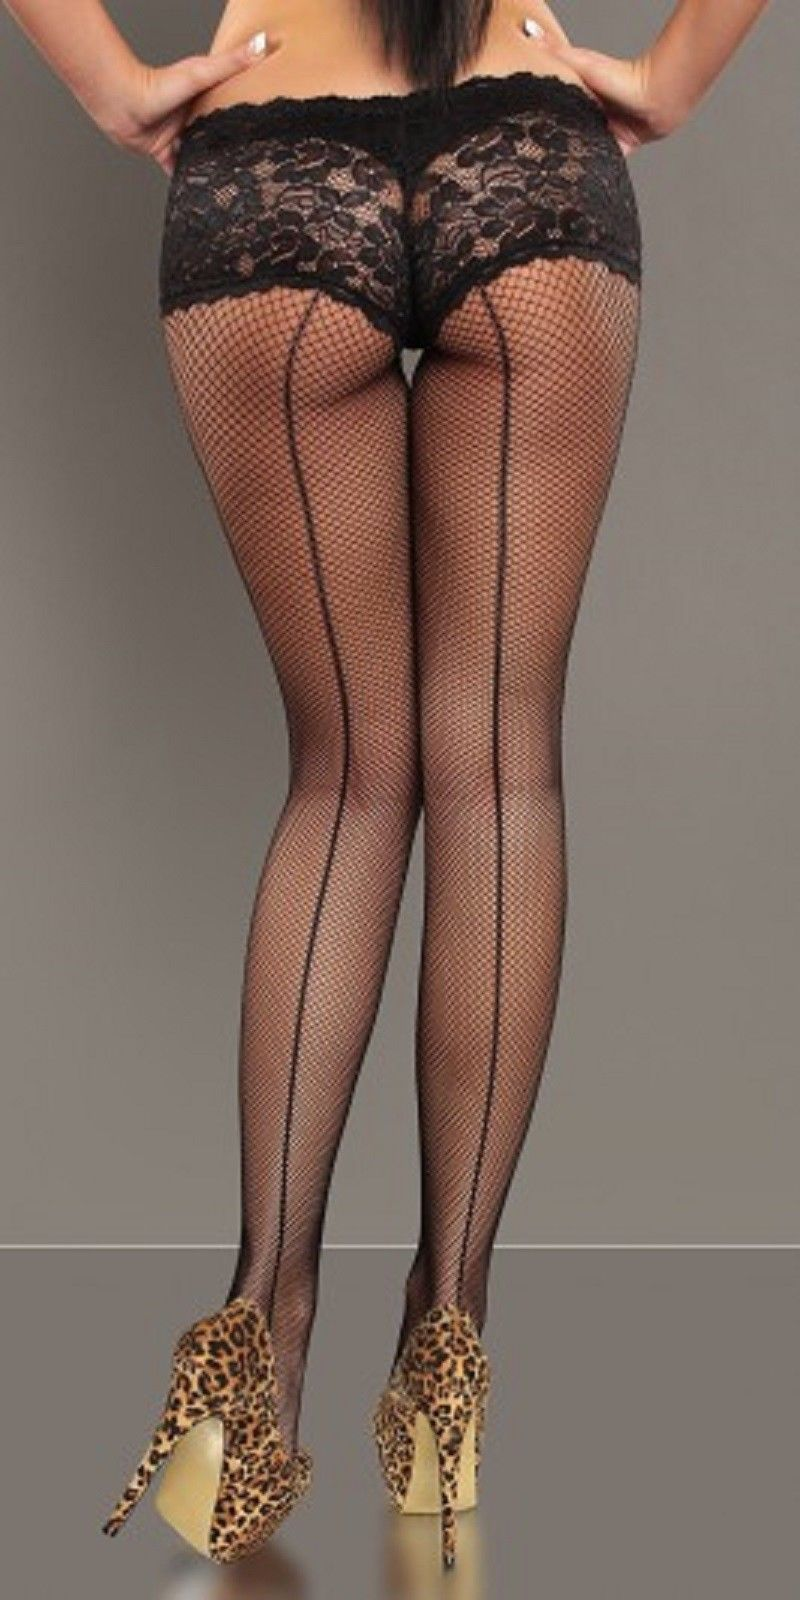 Striped Sheer Pantyhose One Size Fits Most Womens Sheer Pantyhose With Stripes